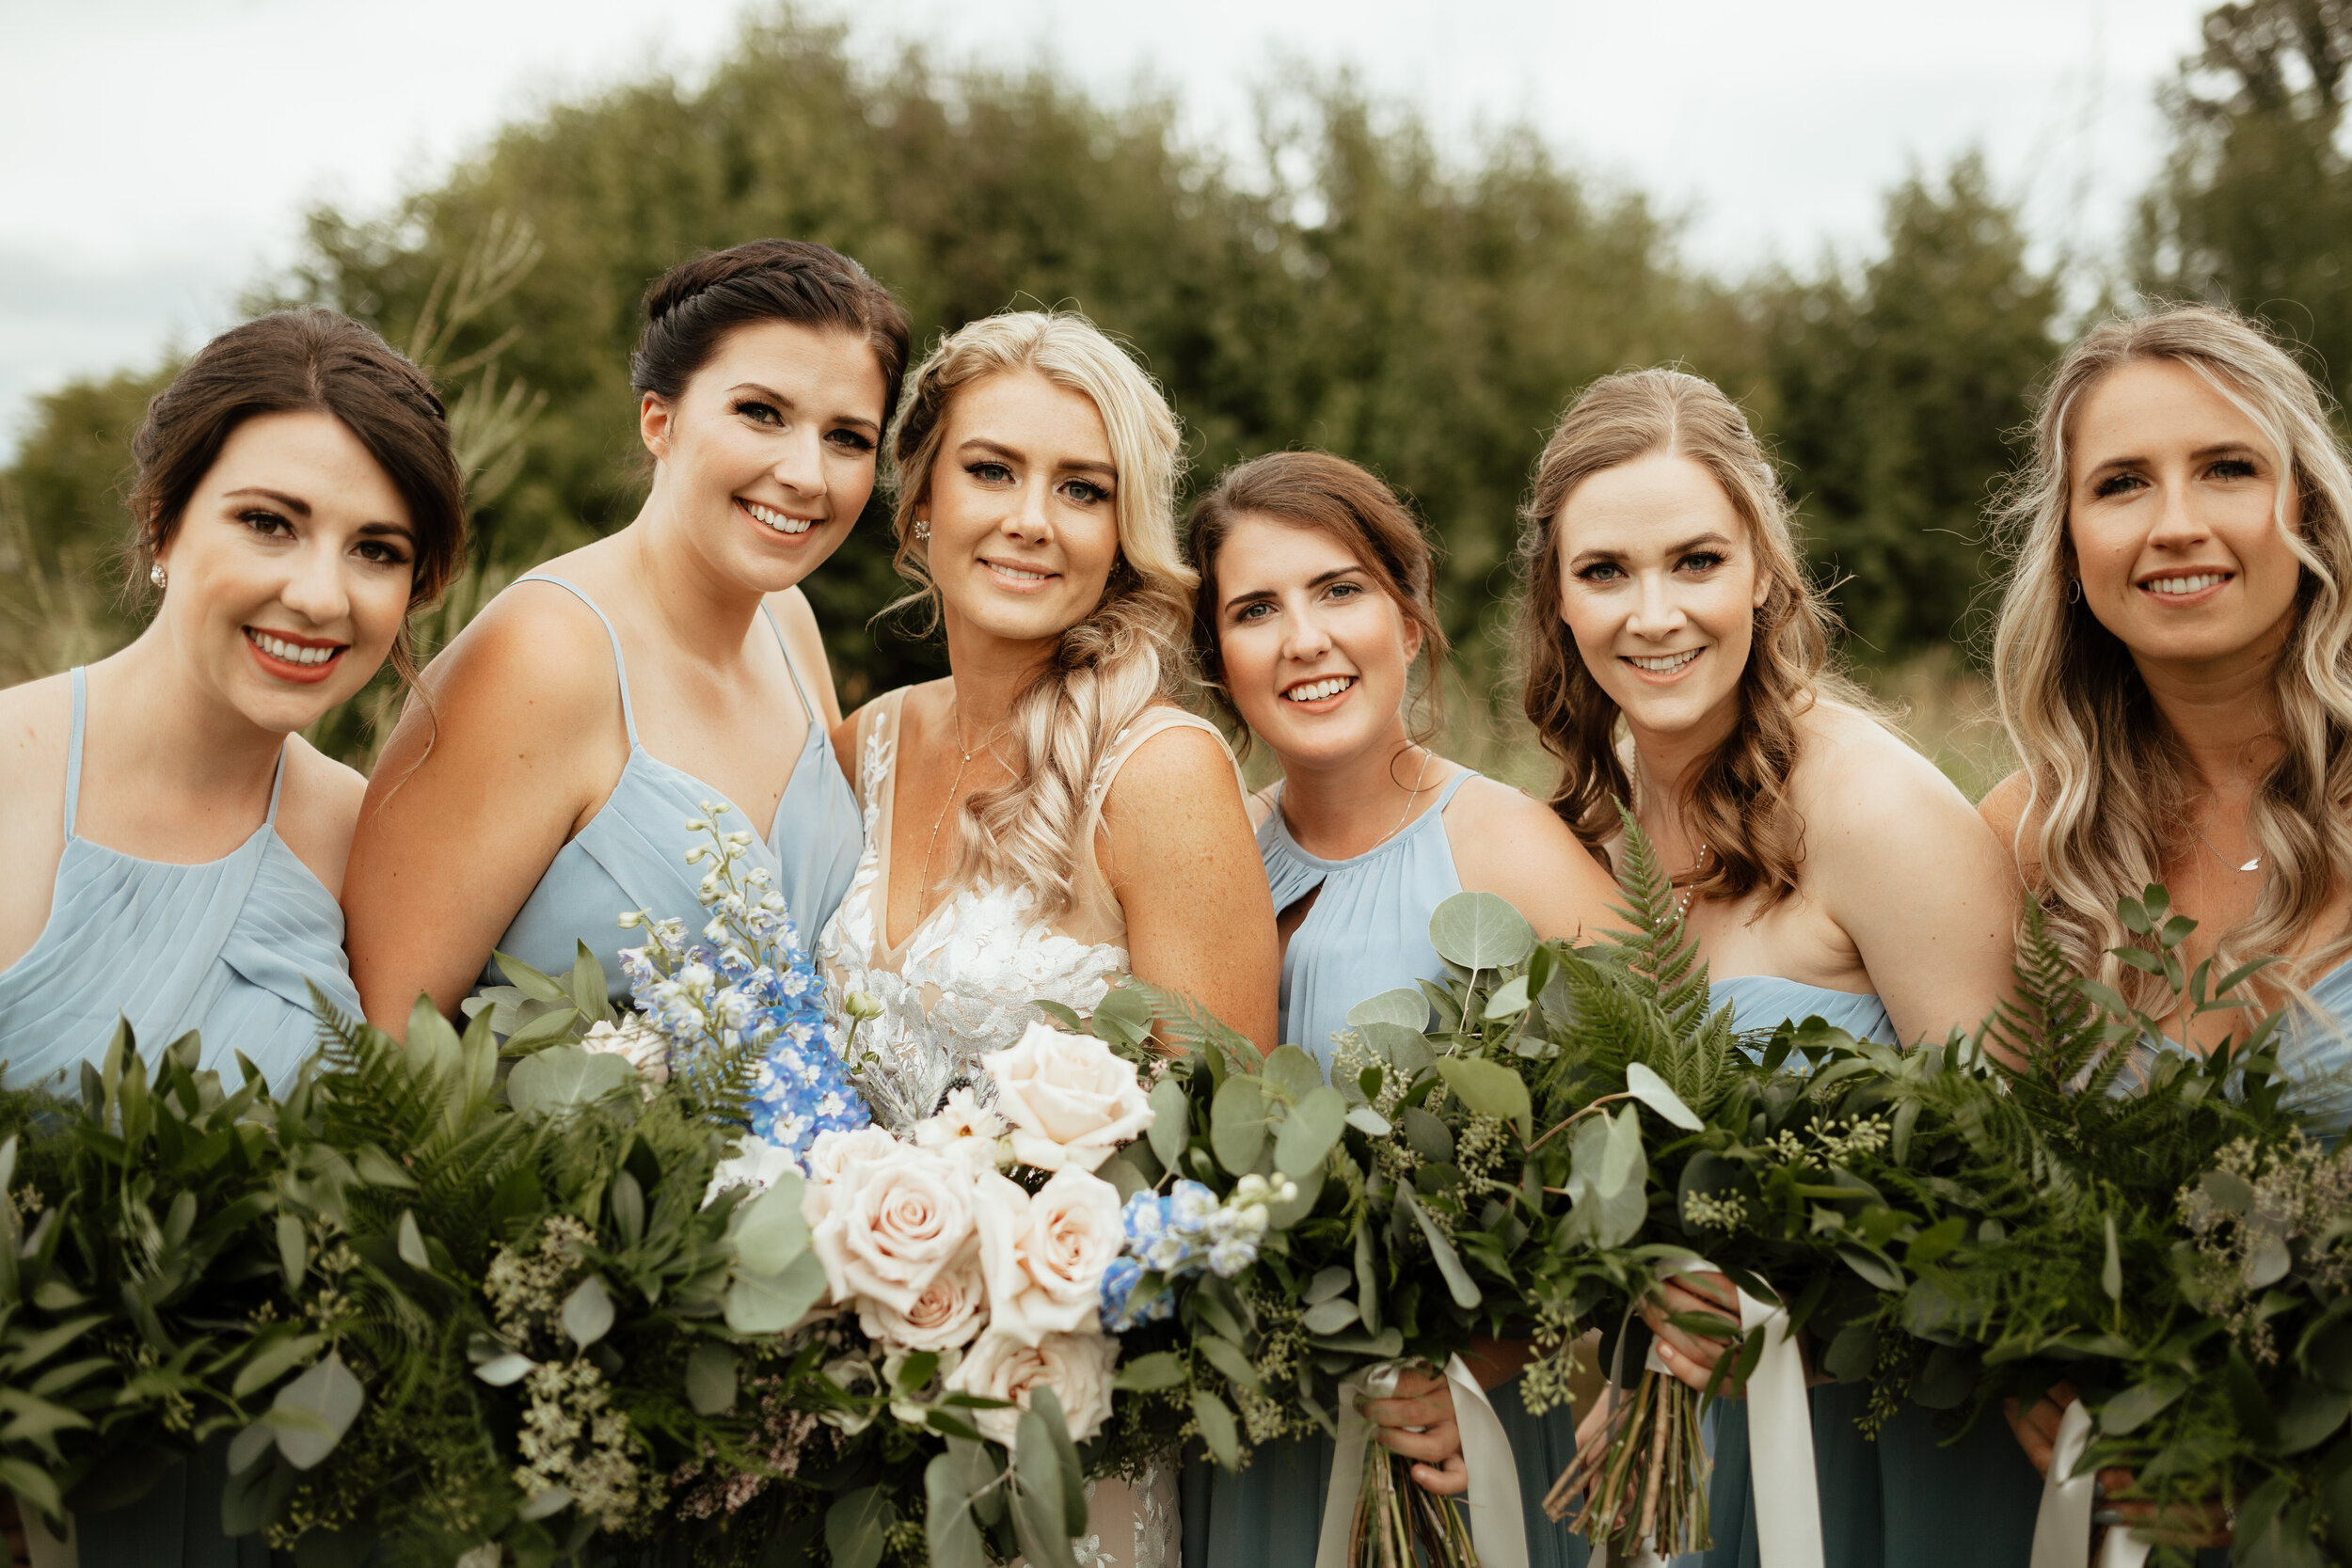 Matt + Jordanne 4 - Bridal Party Portraits-71.jpg